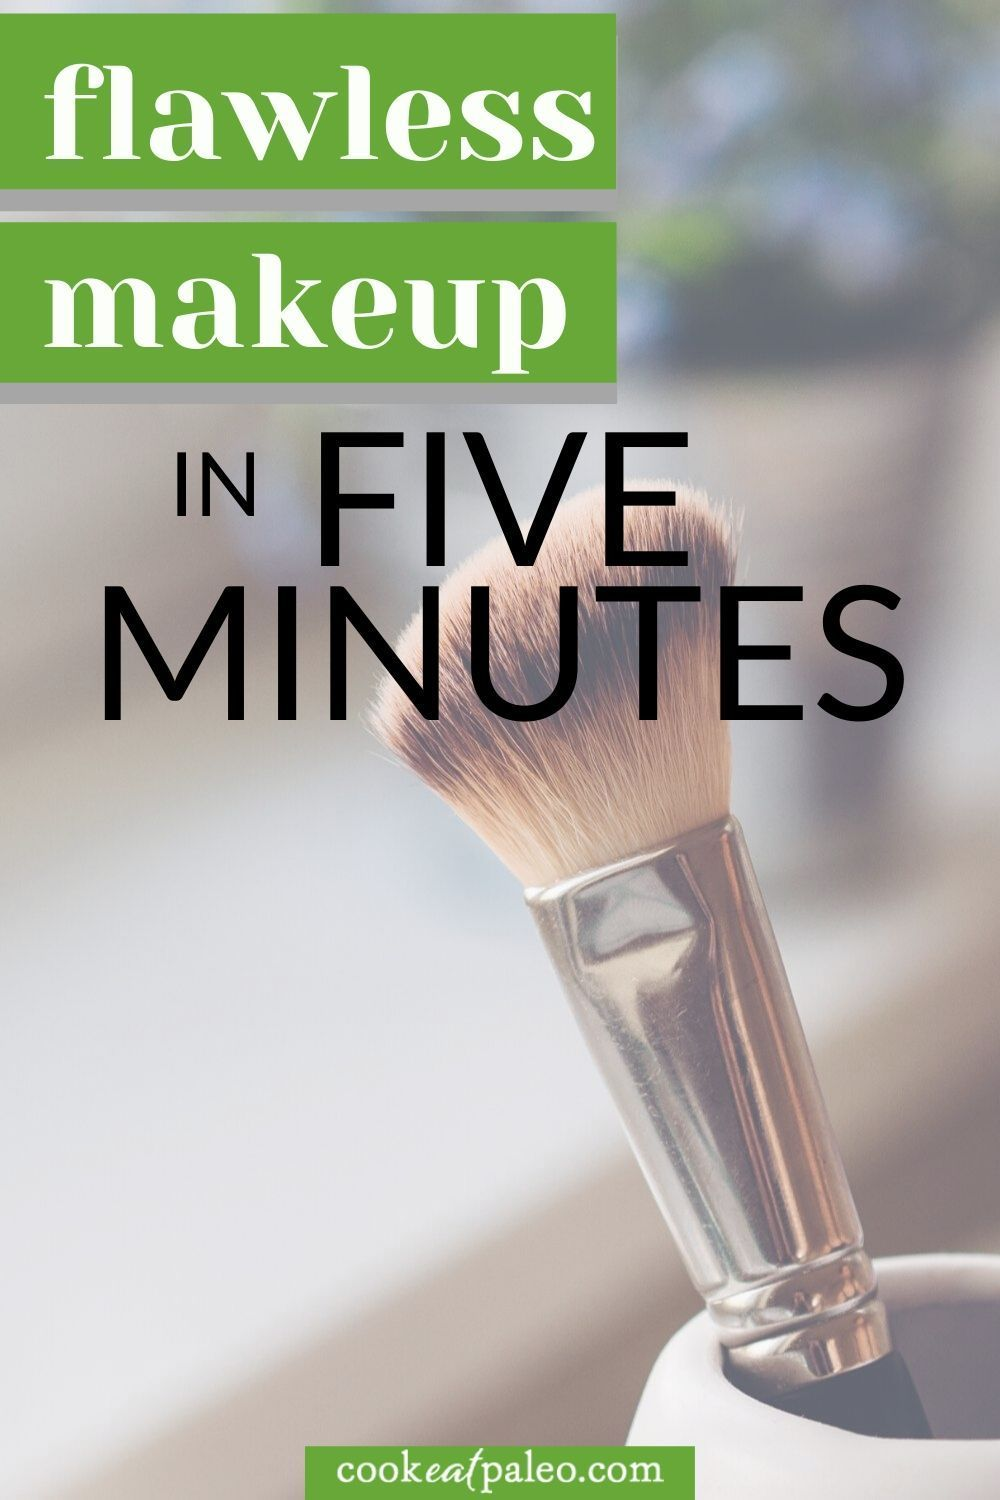 How To Make Over Your Makeup In 5 Minutes in 2020